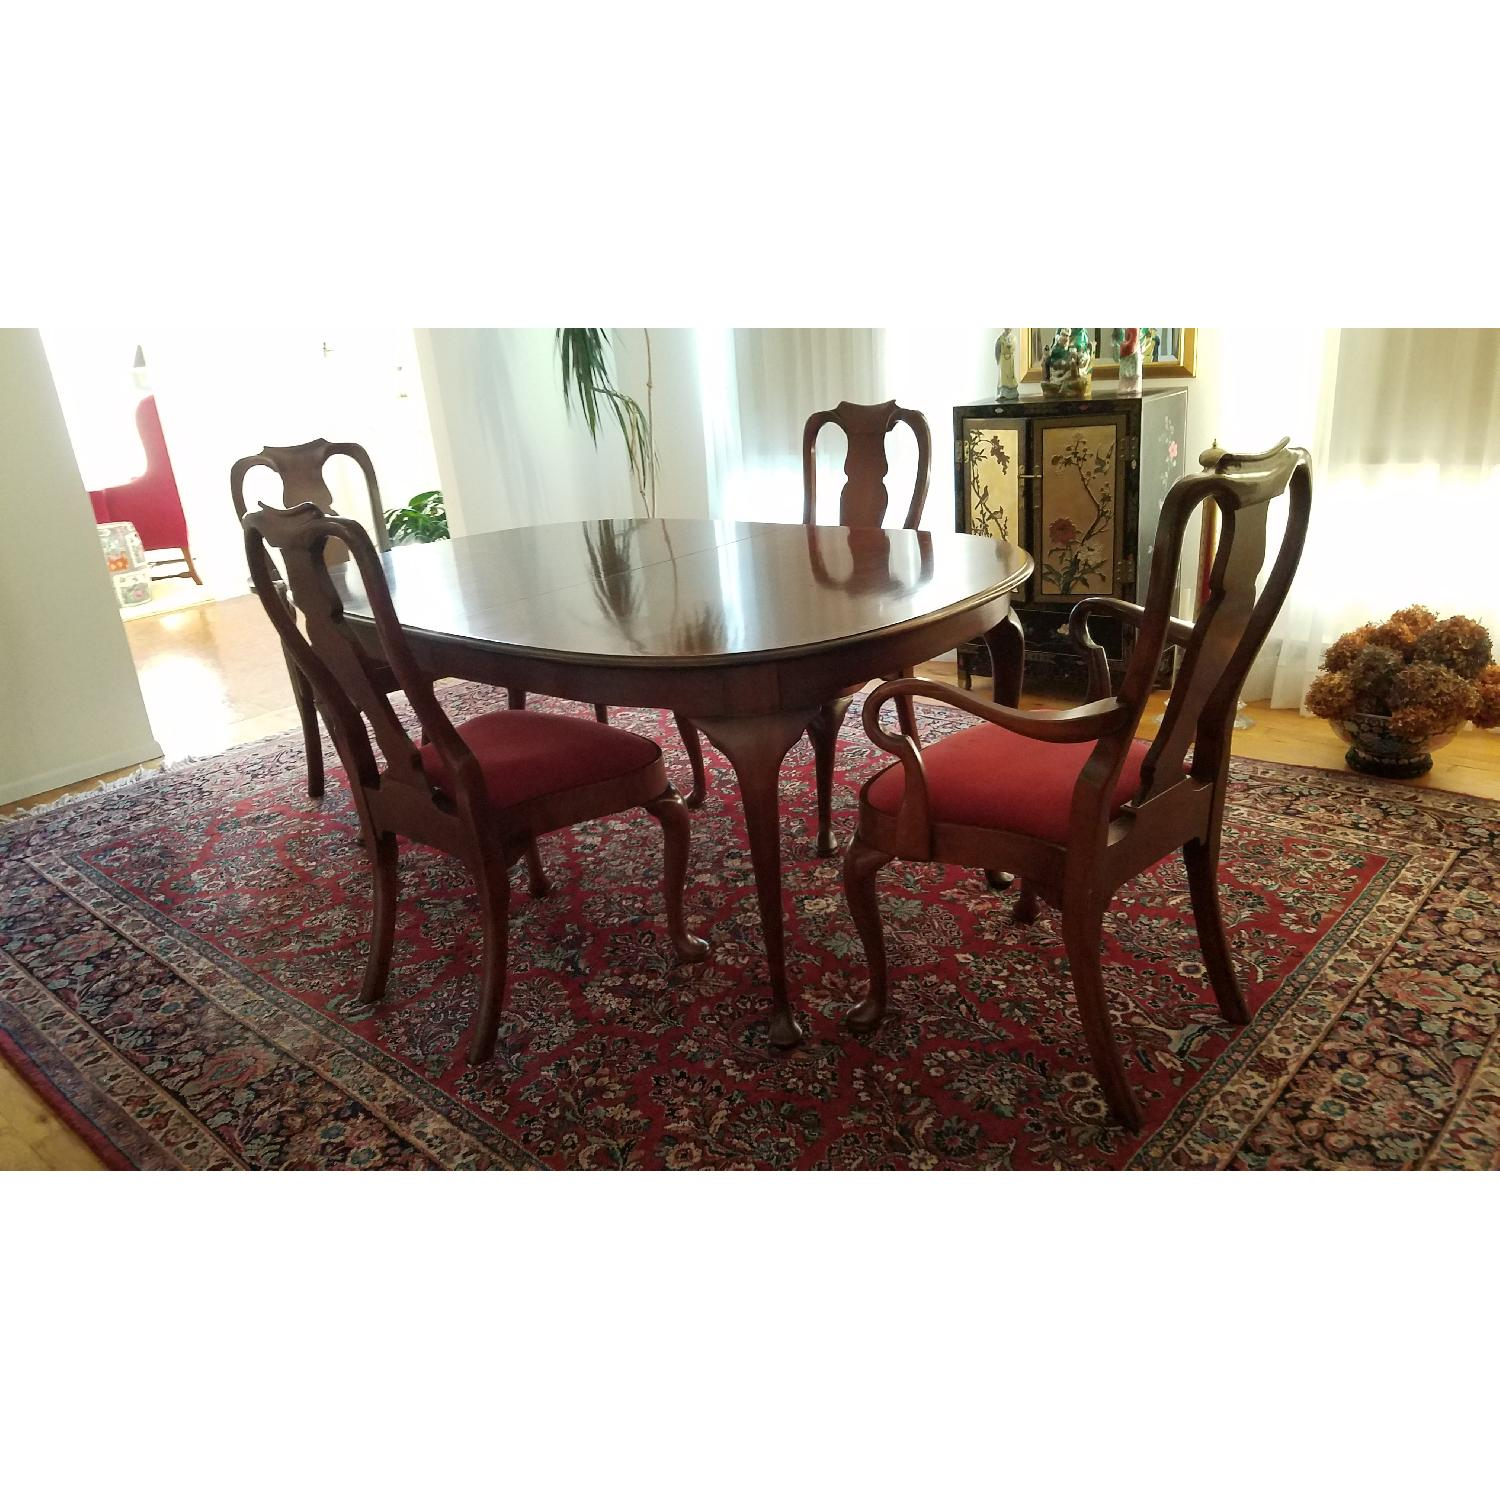 Hickory Chair Co. Expandable Dining Table W/ 6 Chairs ...